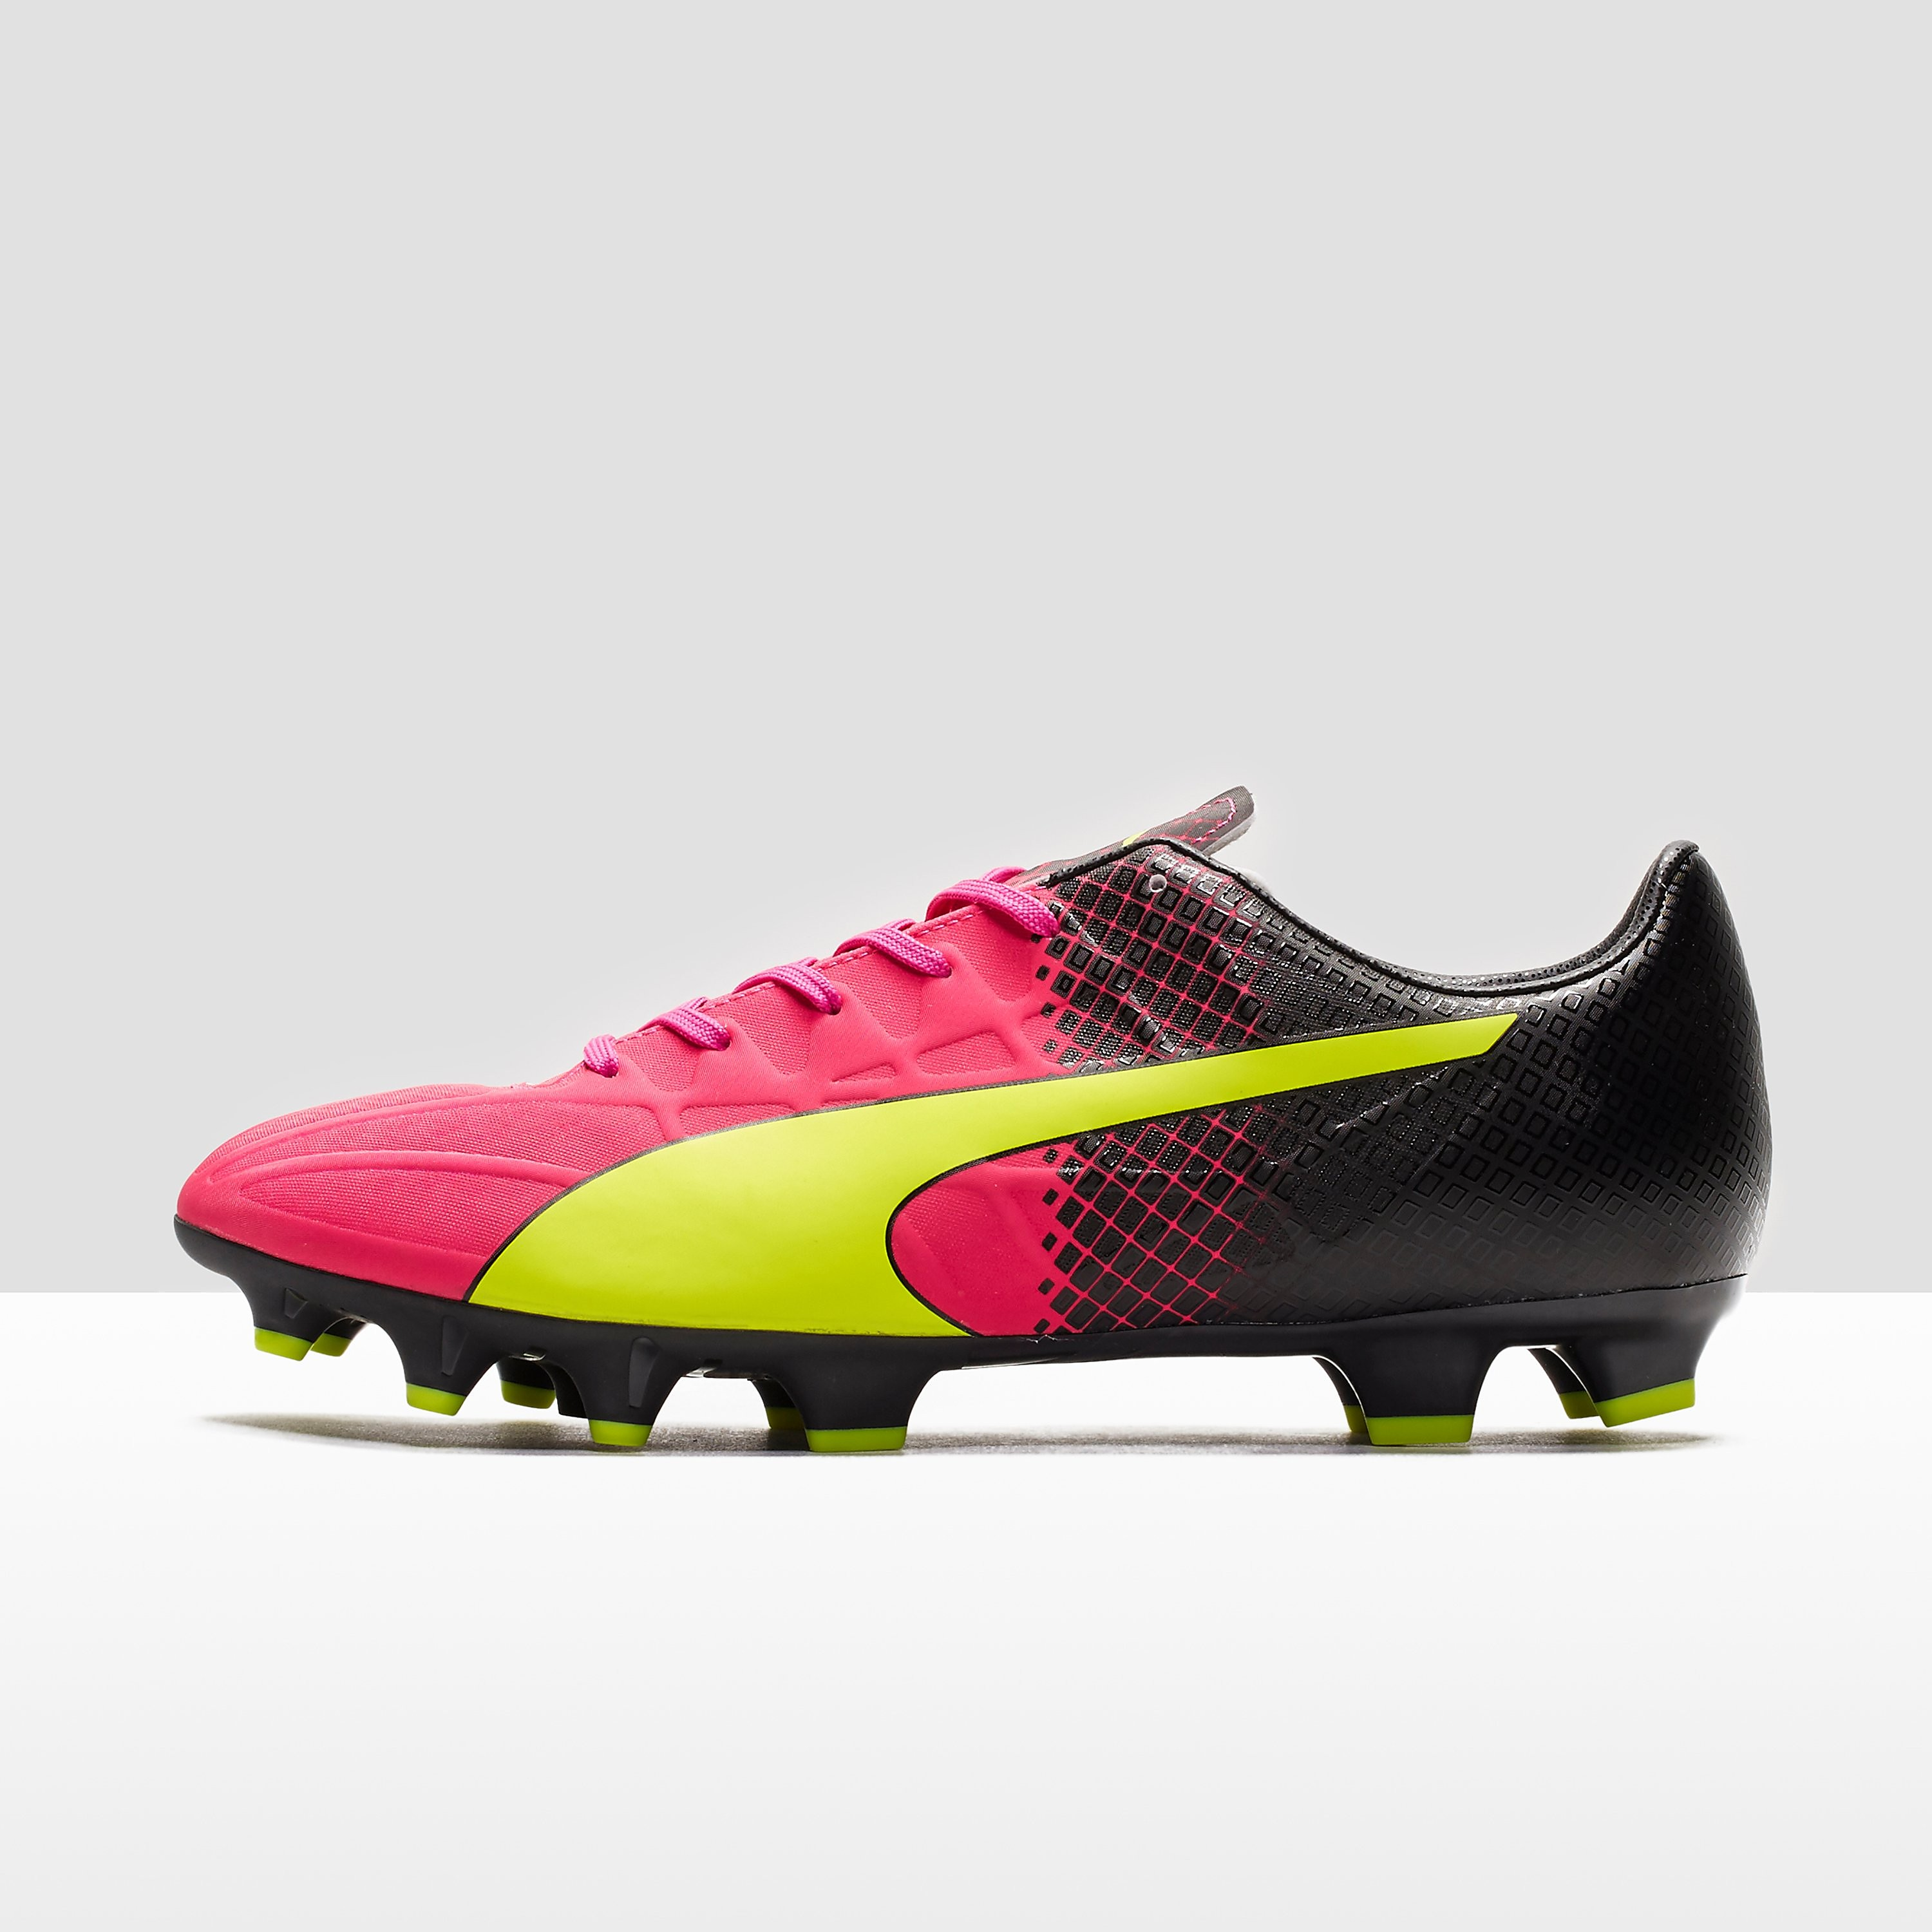 PUMA EvoSPEED Tricks Men's Firm Ground Boots